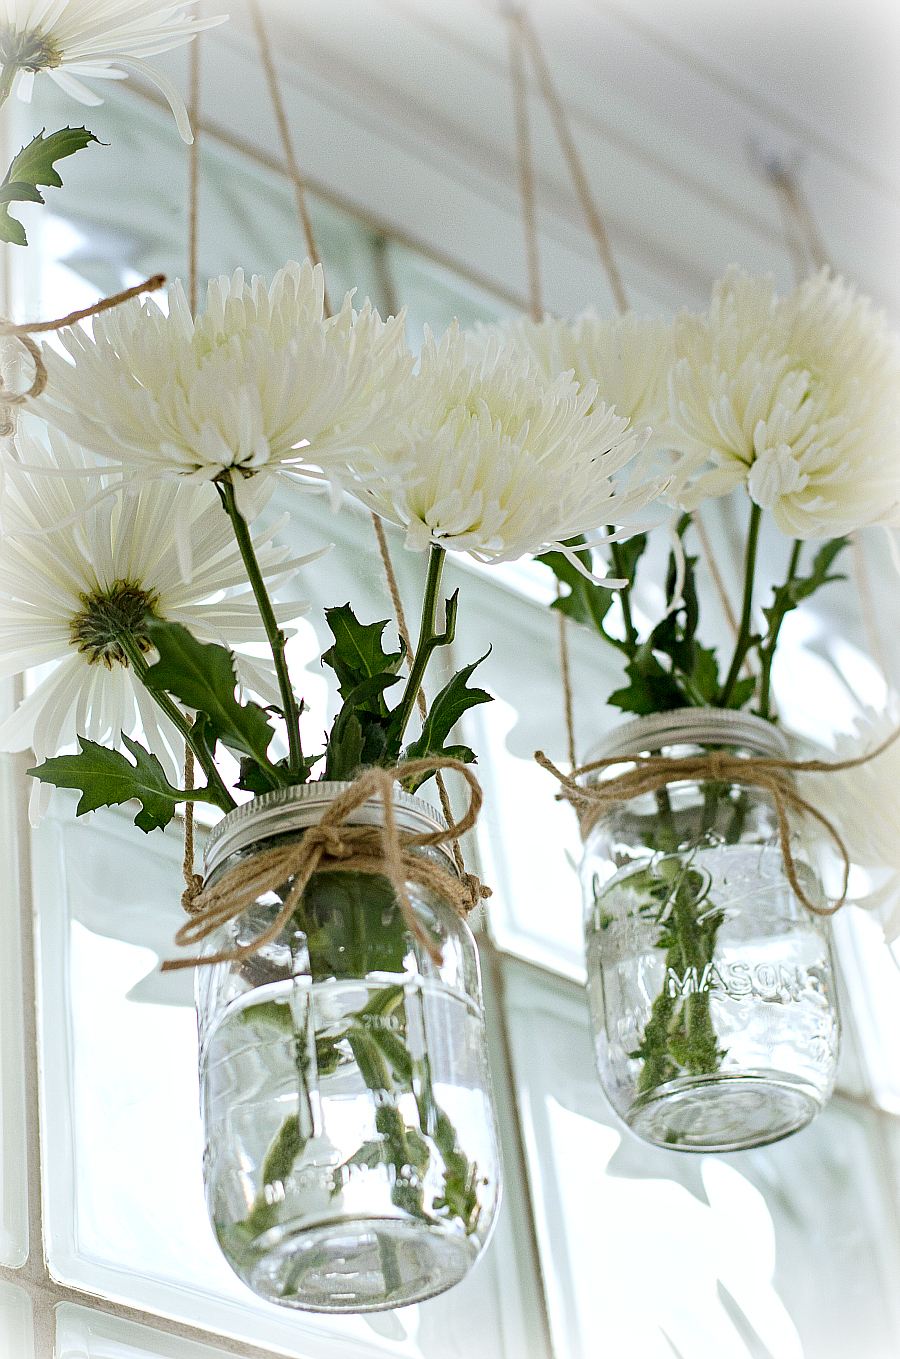 Mason Jar Craft Ideas - Mason Jar Vases